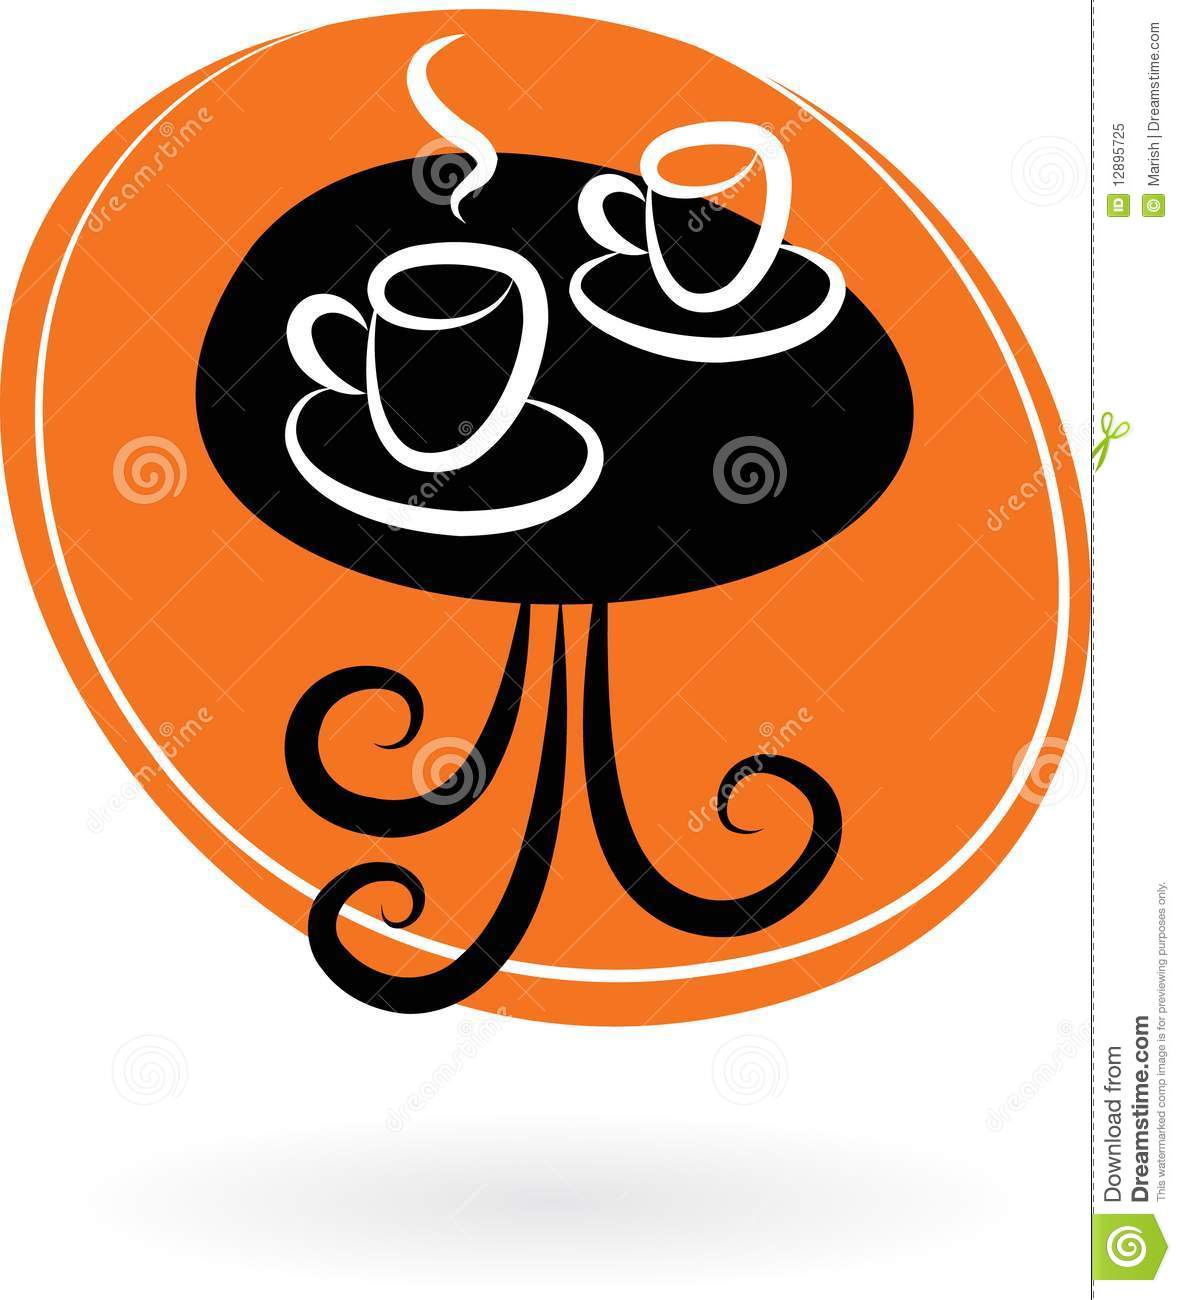 Coffee table with two cups cafe logo royalty free stock for Table table logo